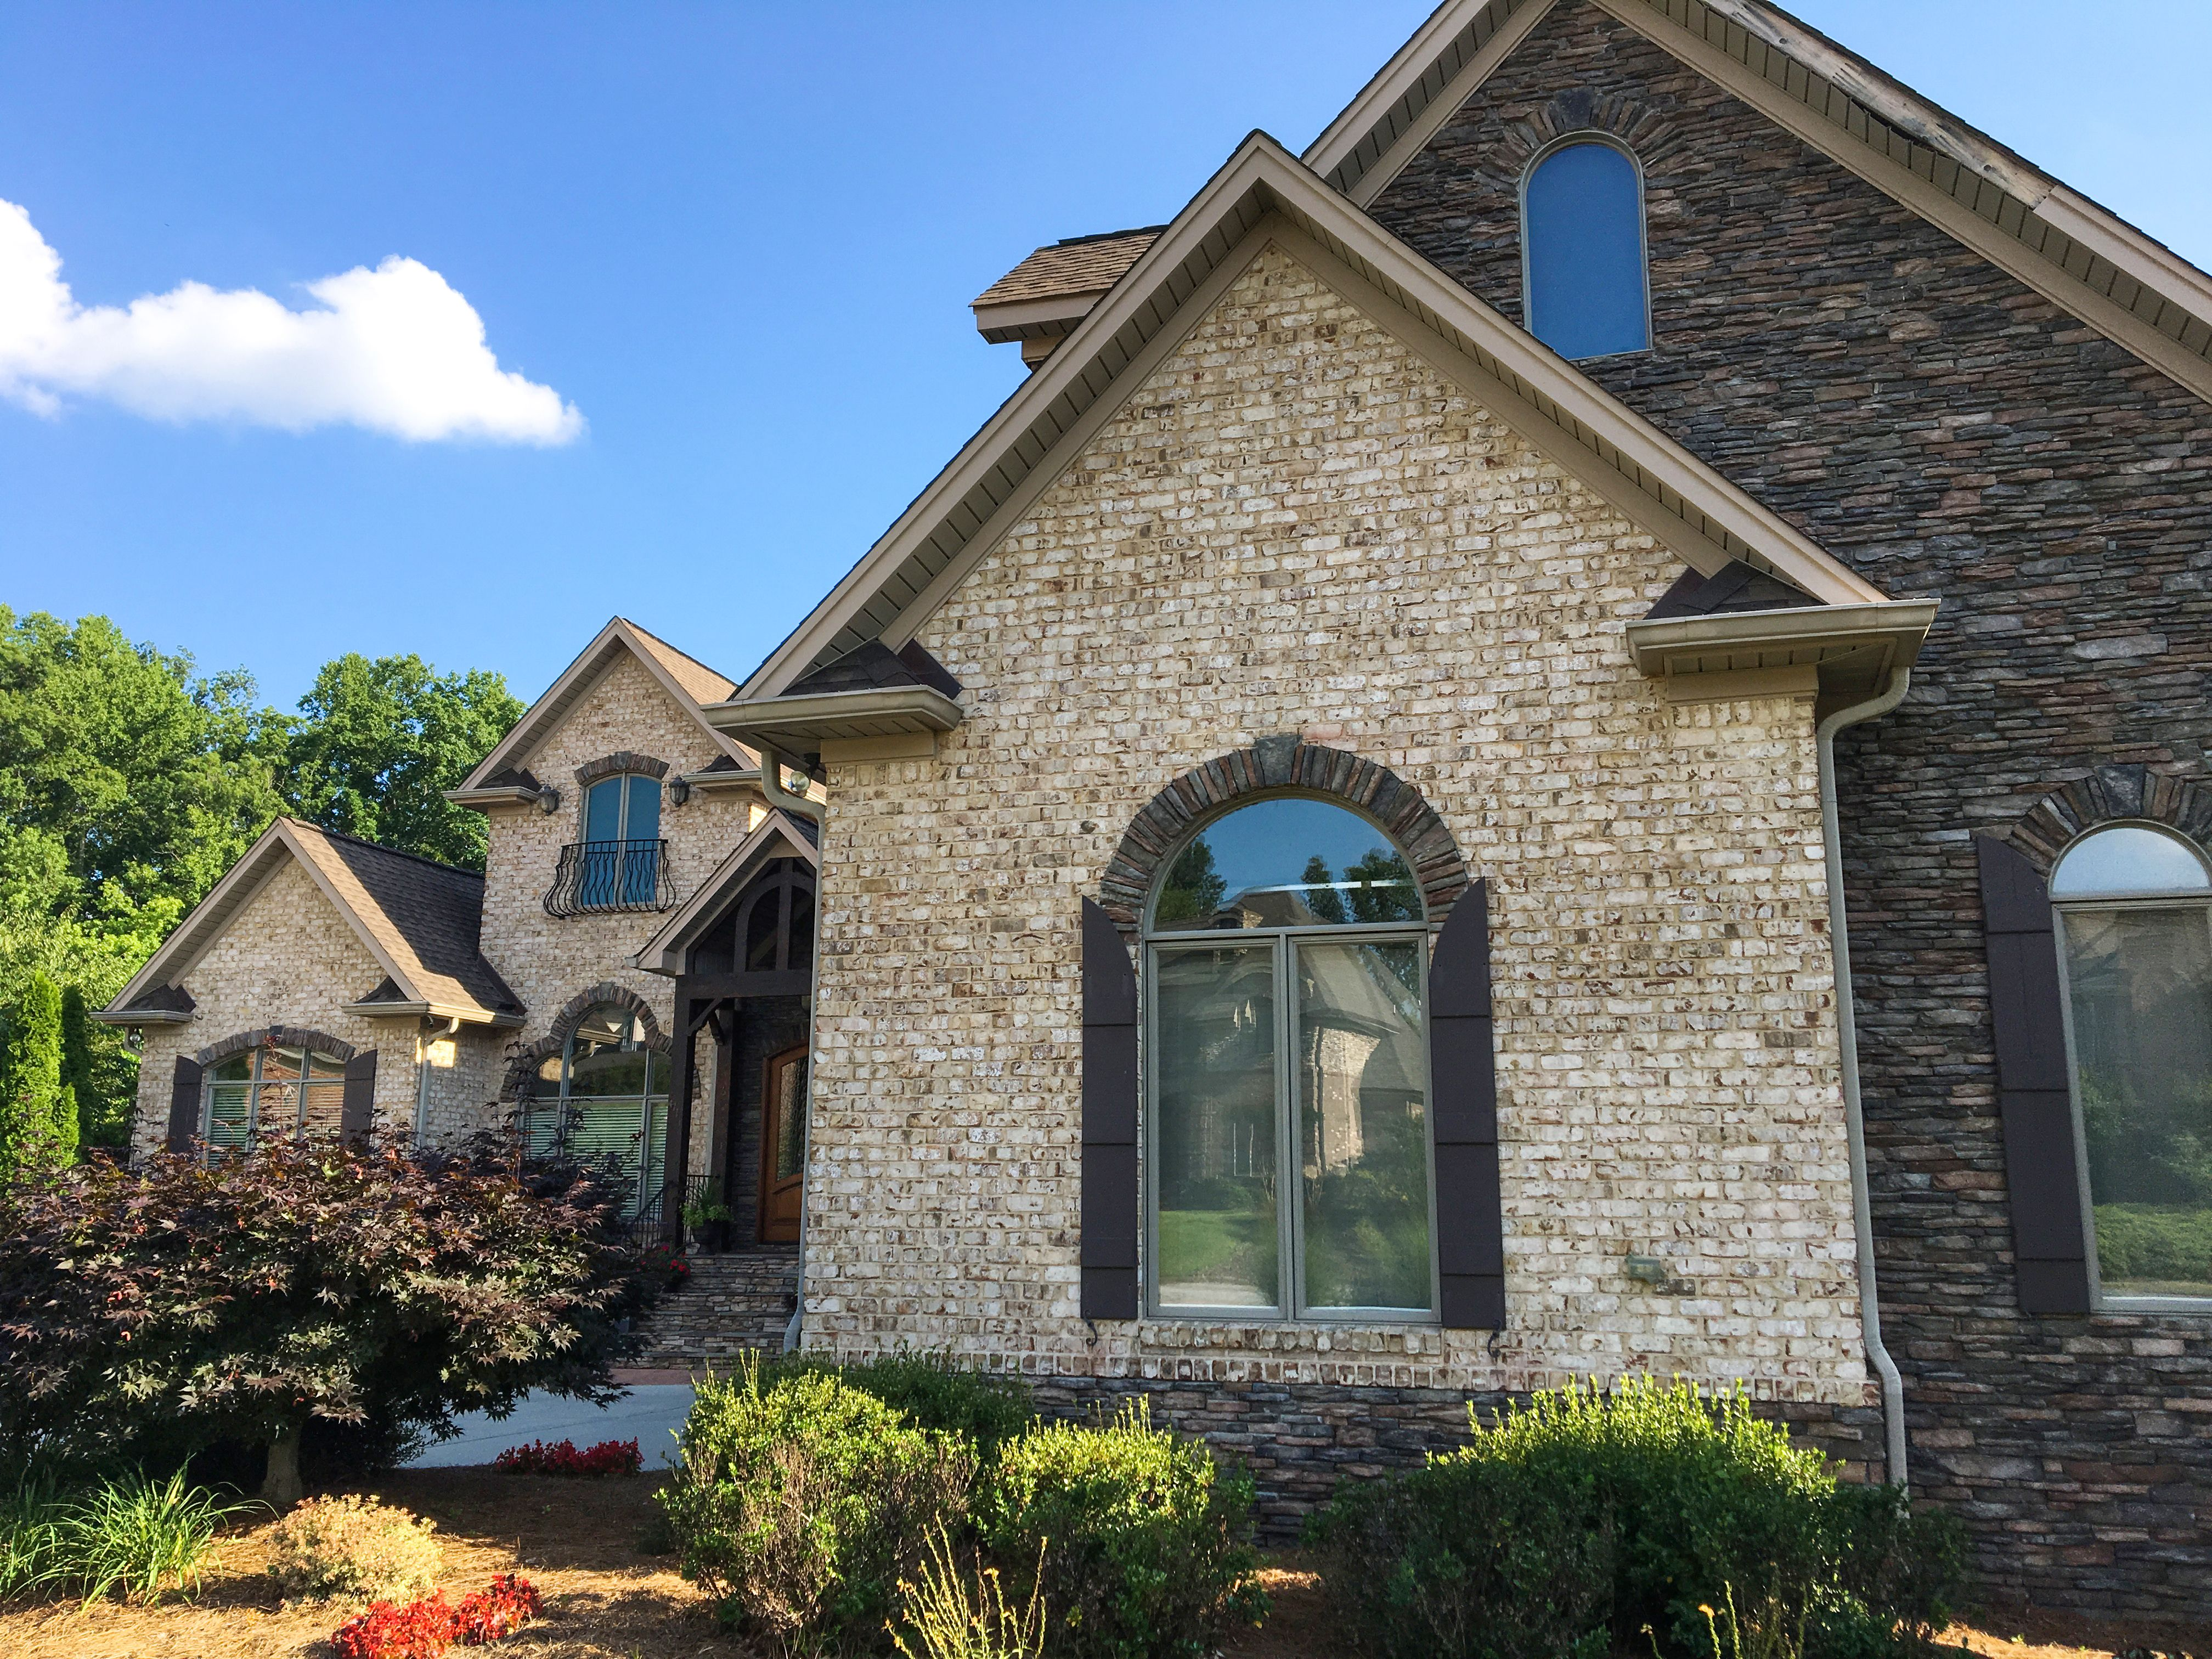 Mix A White Brick And Dark Stone For A Striking High Contrast Exterior Brick Shown Is Oyster Pearl Exterior Brick Brick Exterior House Stone Exterior Houses